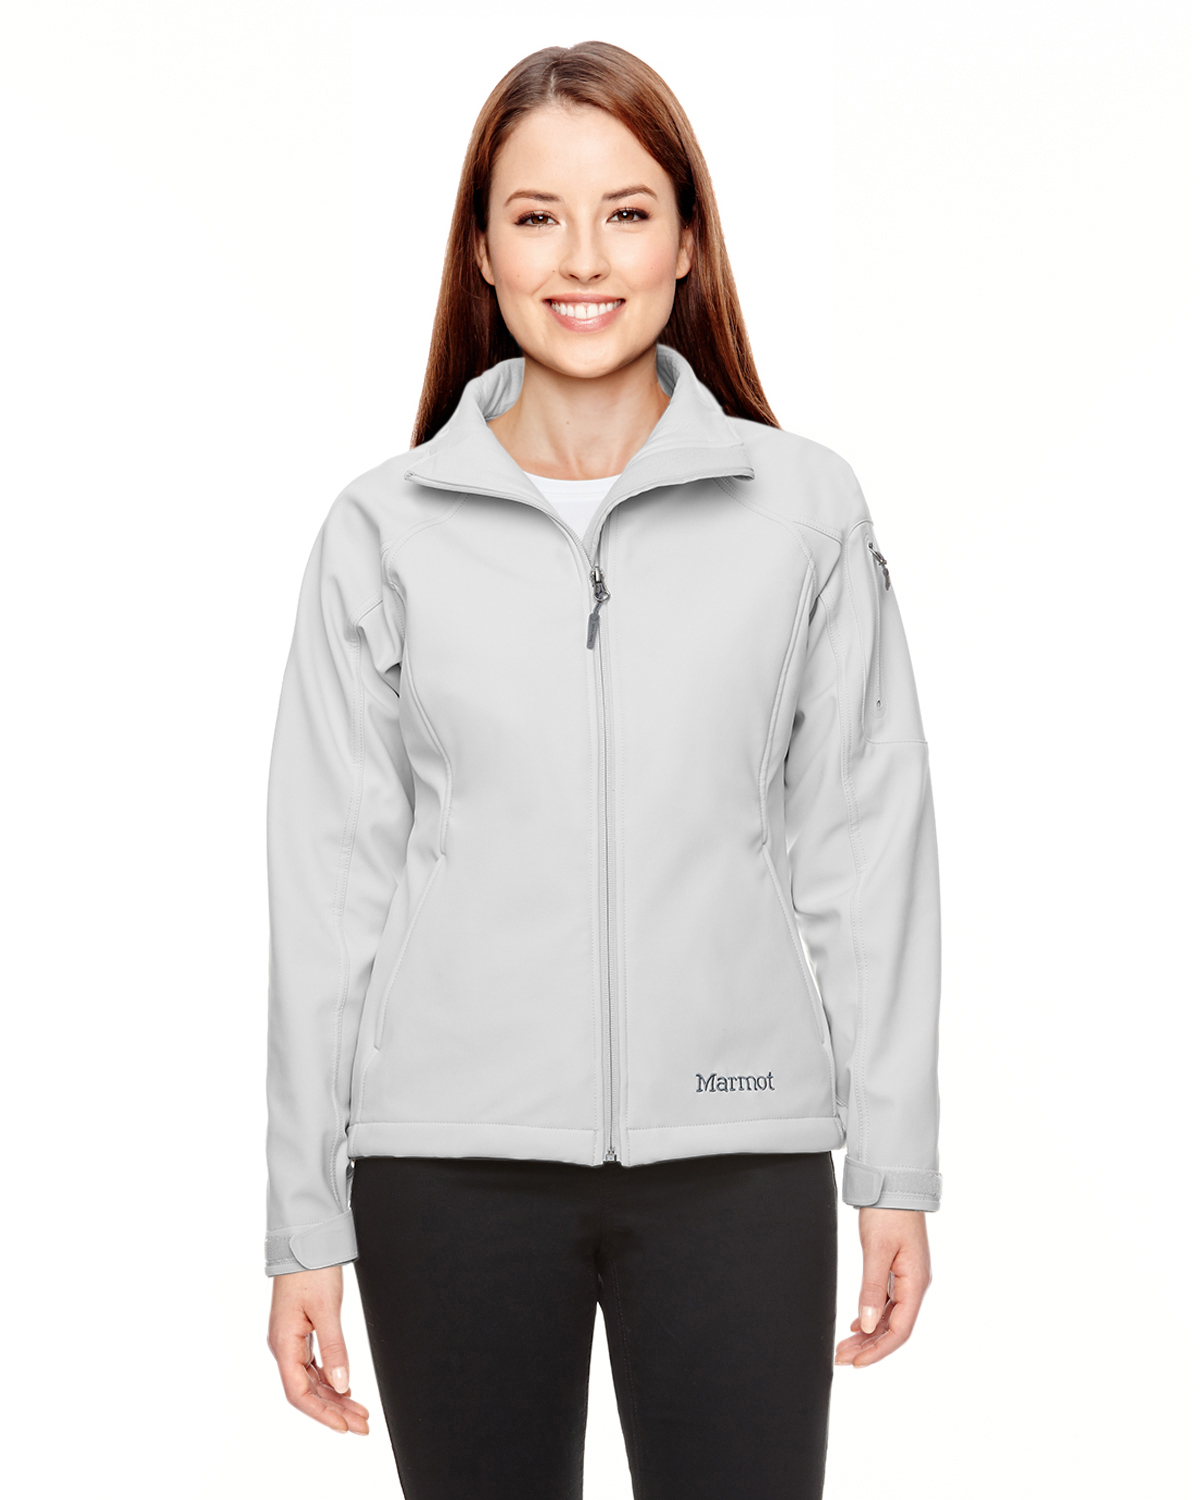 Marmot - 85000, Ladies' Gravity Jacket, Embroidery, Screen Printing - Logo Masters International